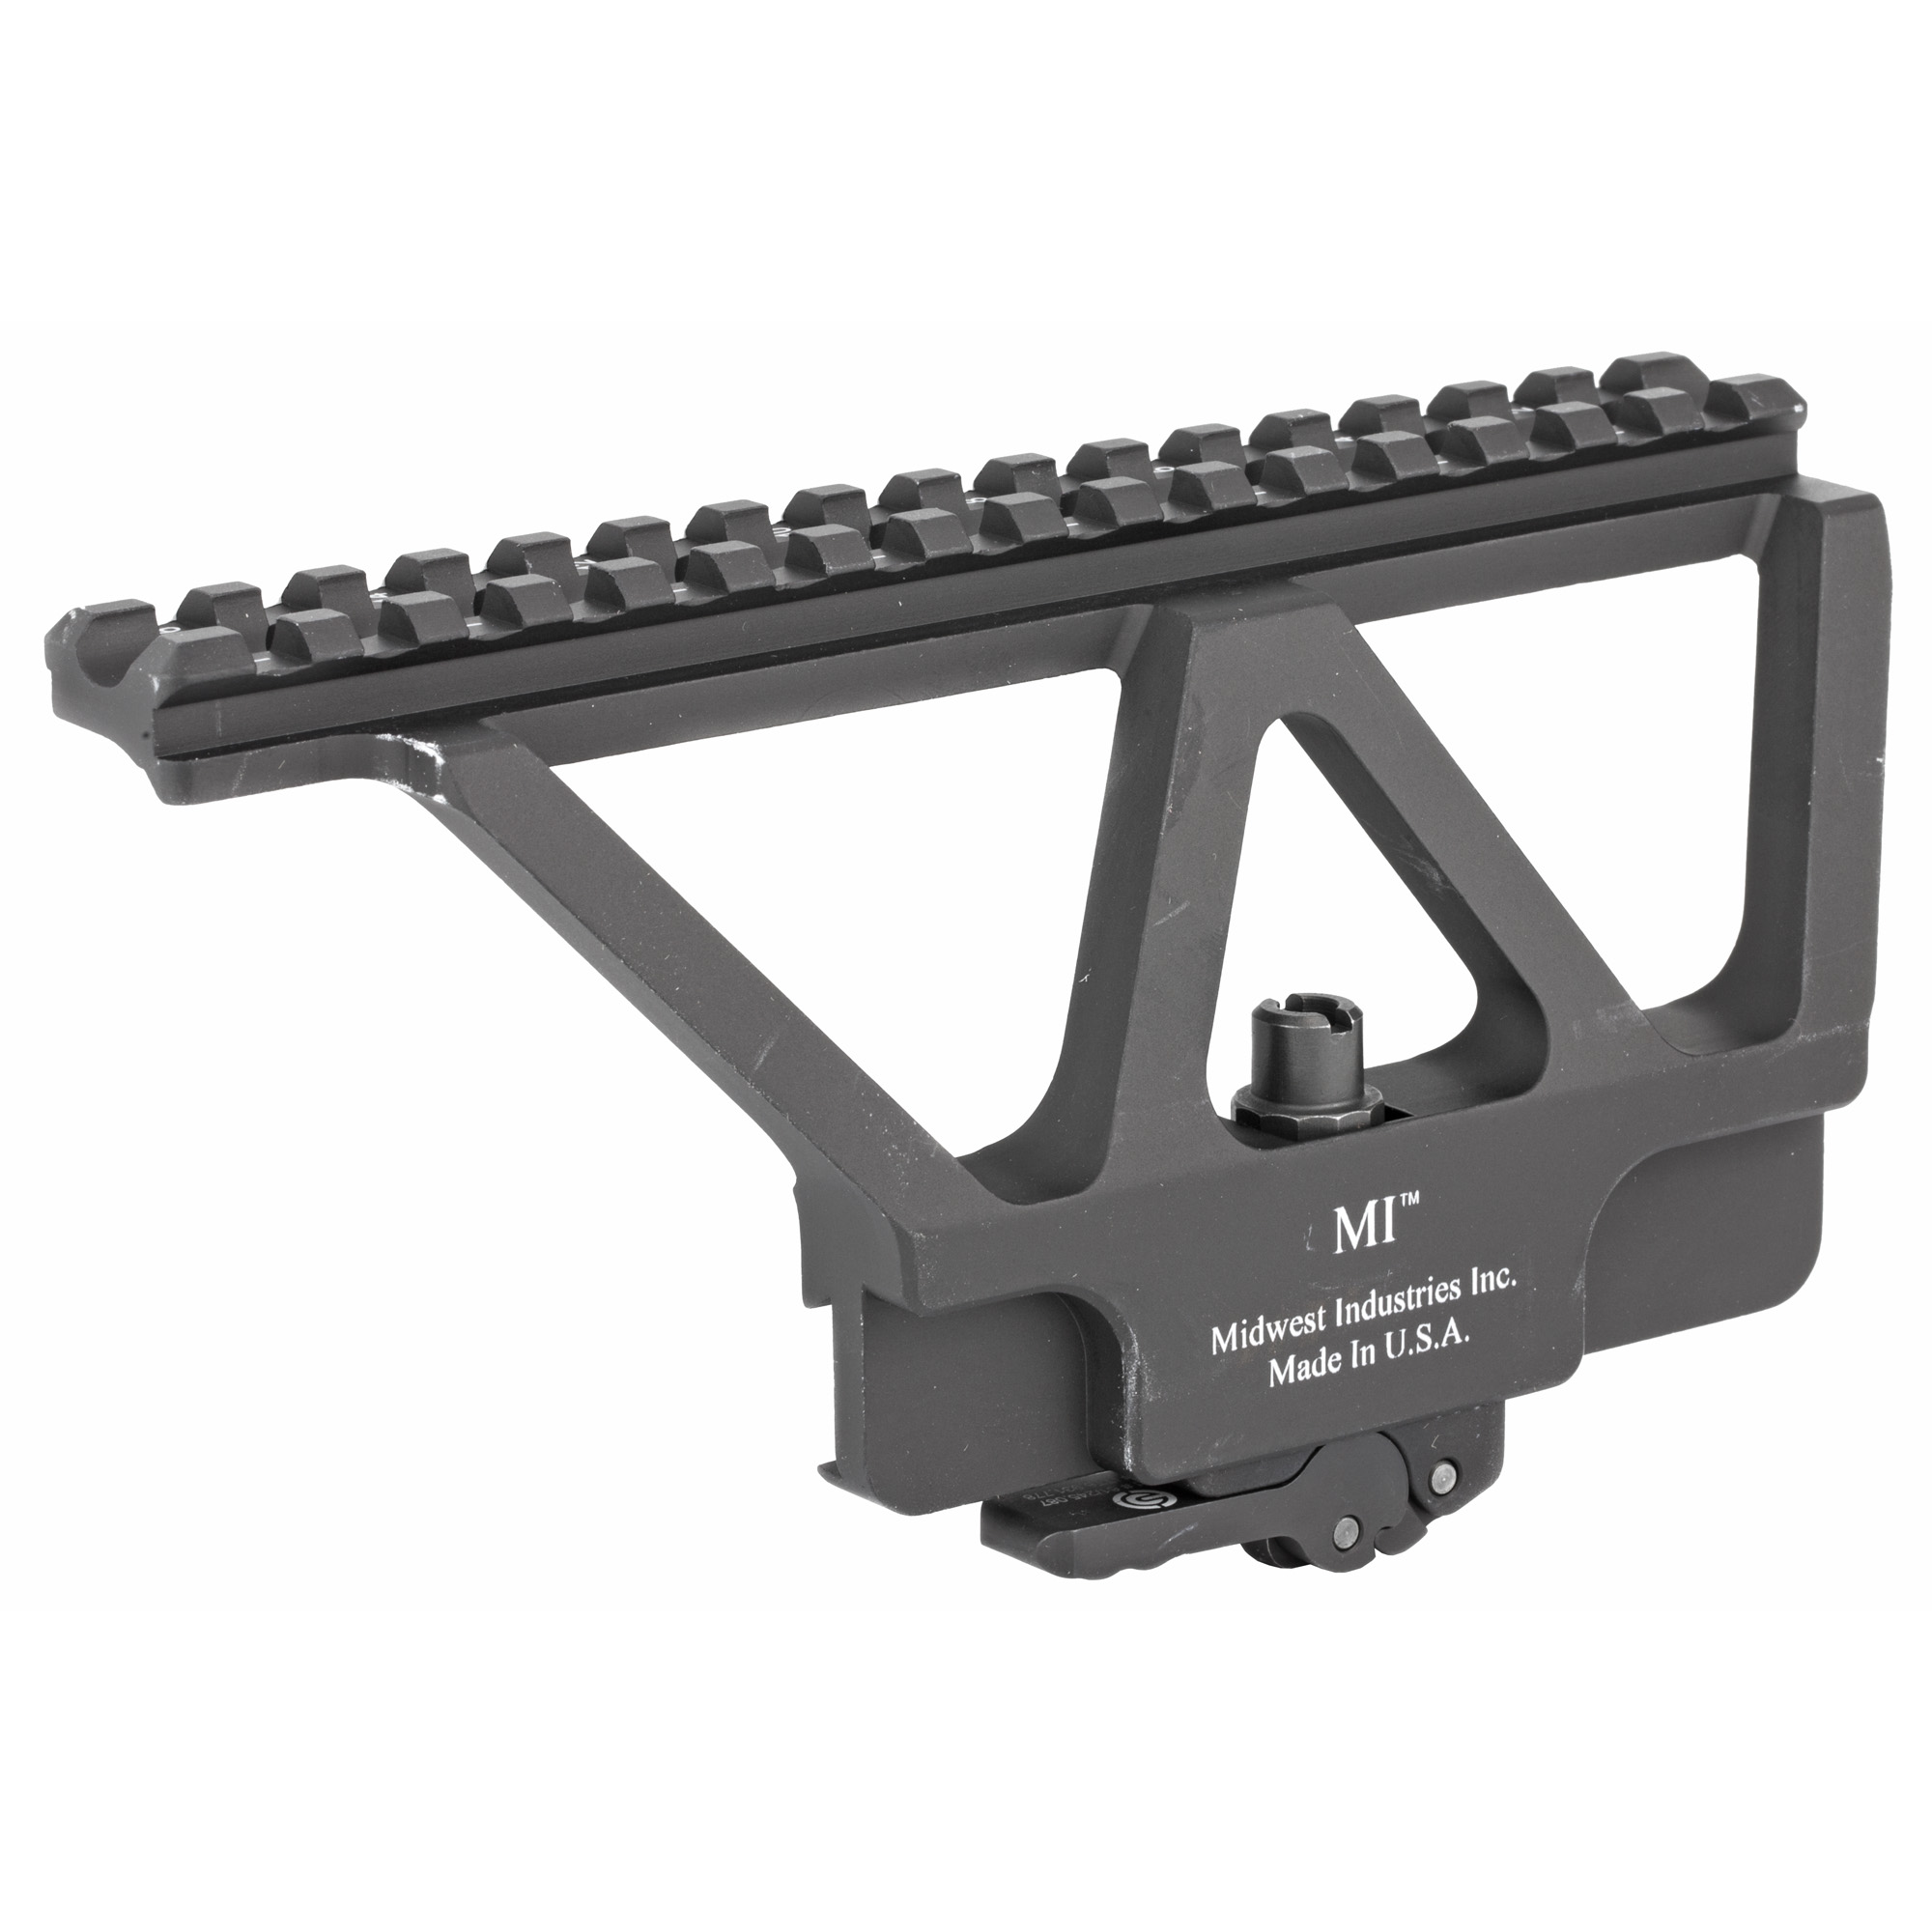 "Railed scope mount for AK type rifles that attaches to the side mounting system"" made by Midwest Industries."